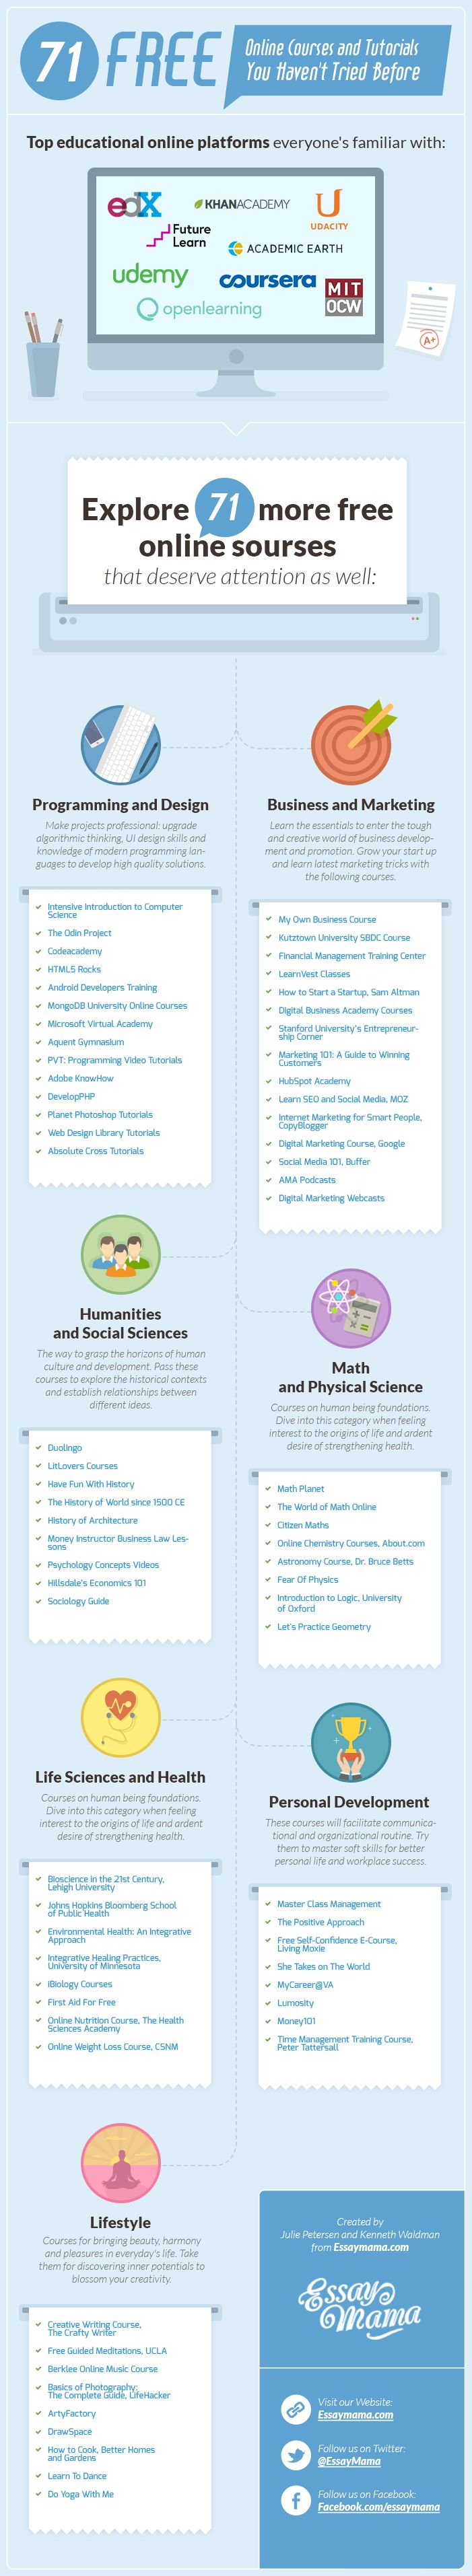 Best 25 personal training courses ideas on pinterest personal 71 free online courses and tutorials you havent tried before infographic xflitez Image collections